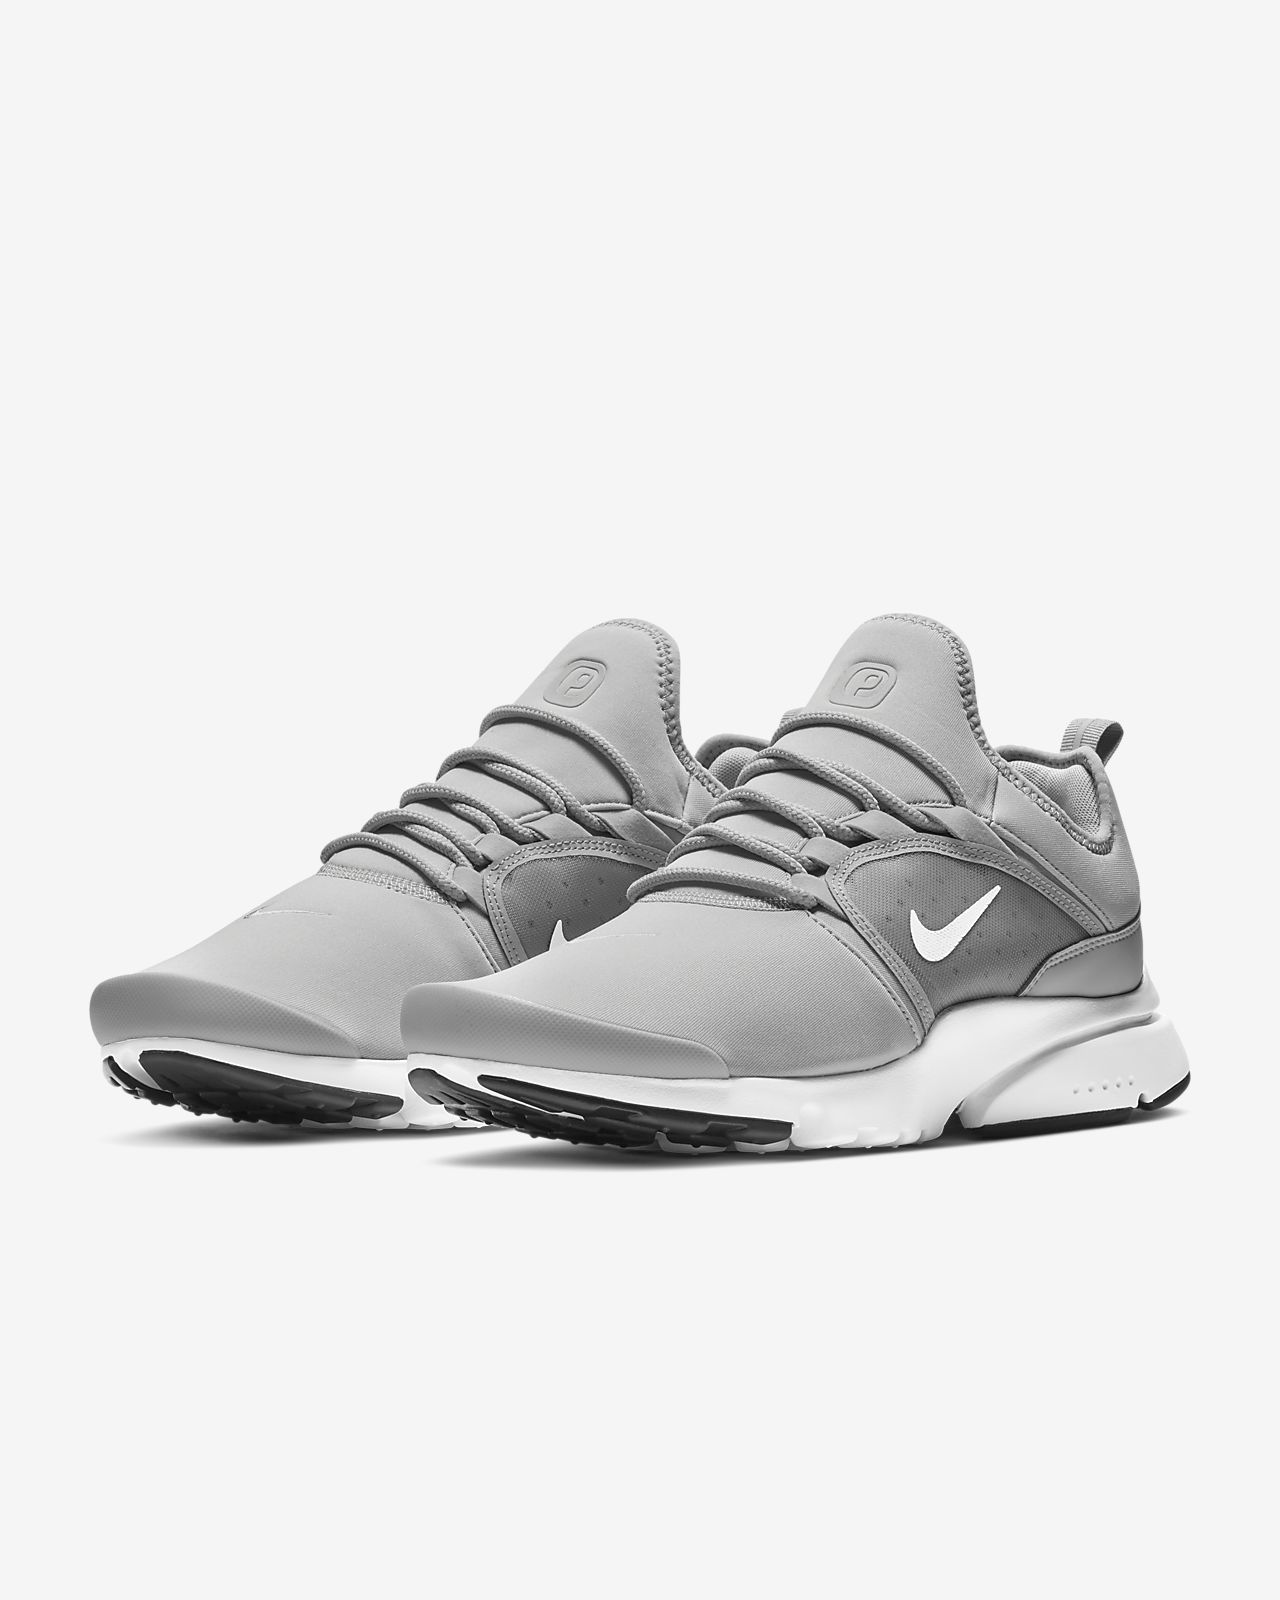 481f4872c2708 Nike Presto Fly World Men s Shoe. Nike.com AT